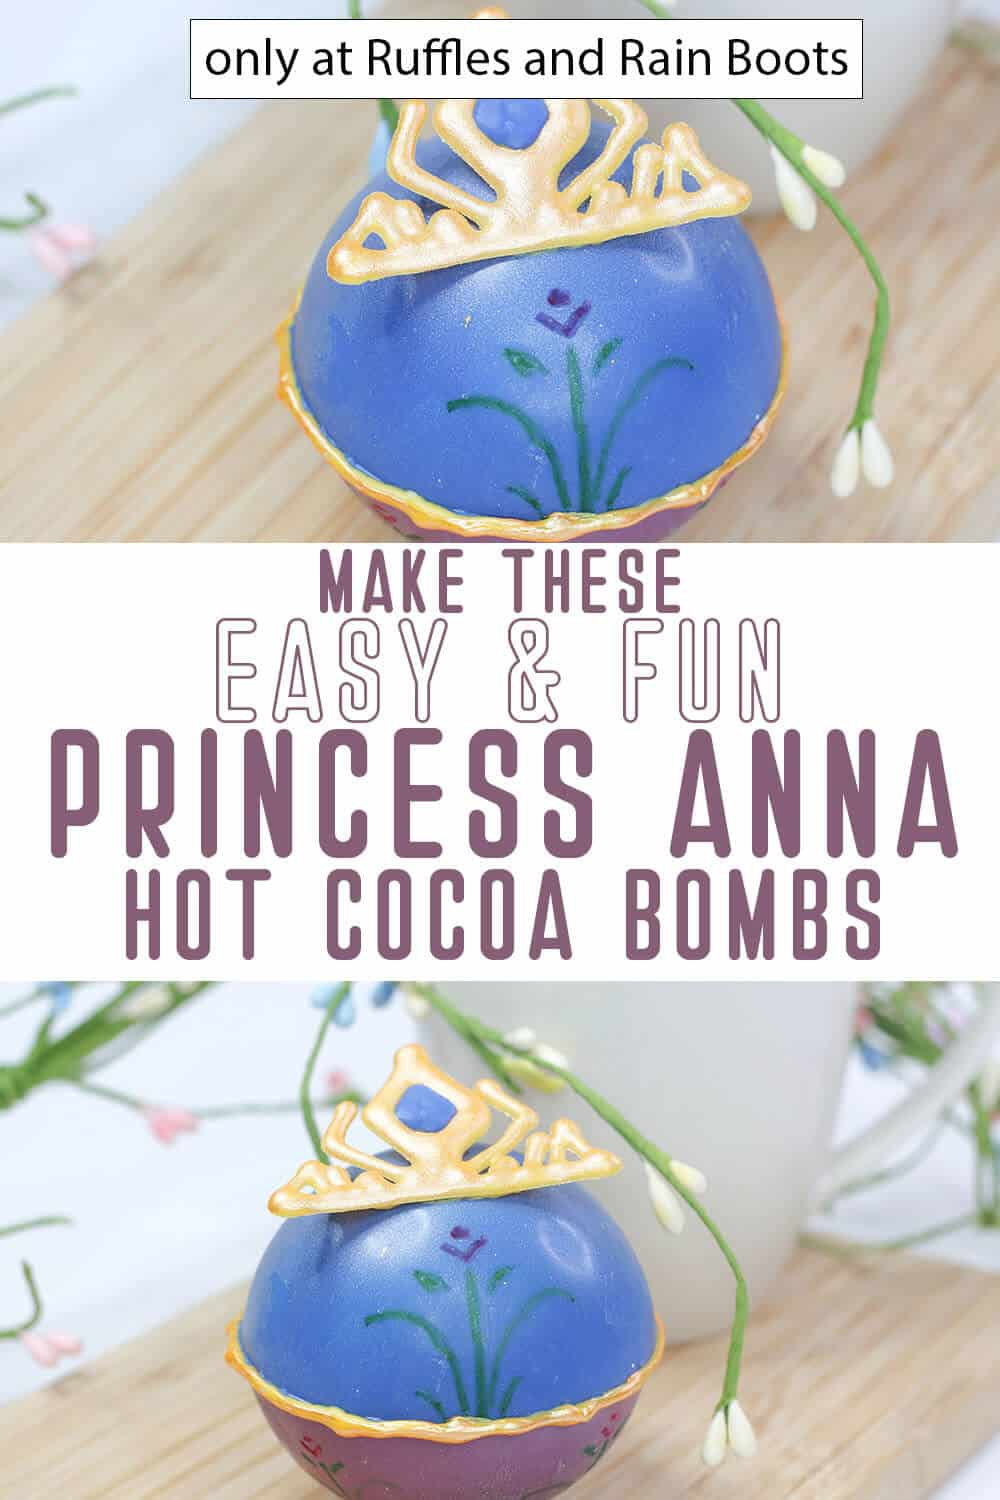 photo collage of disney princess inspired hot cocoa bombs with text which reads make these easy & fun princess anna hot cocoa bombs